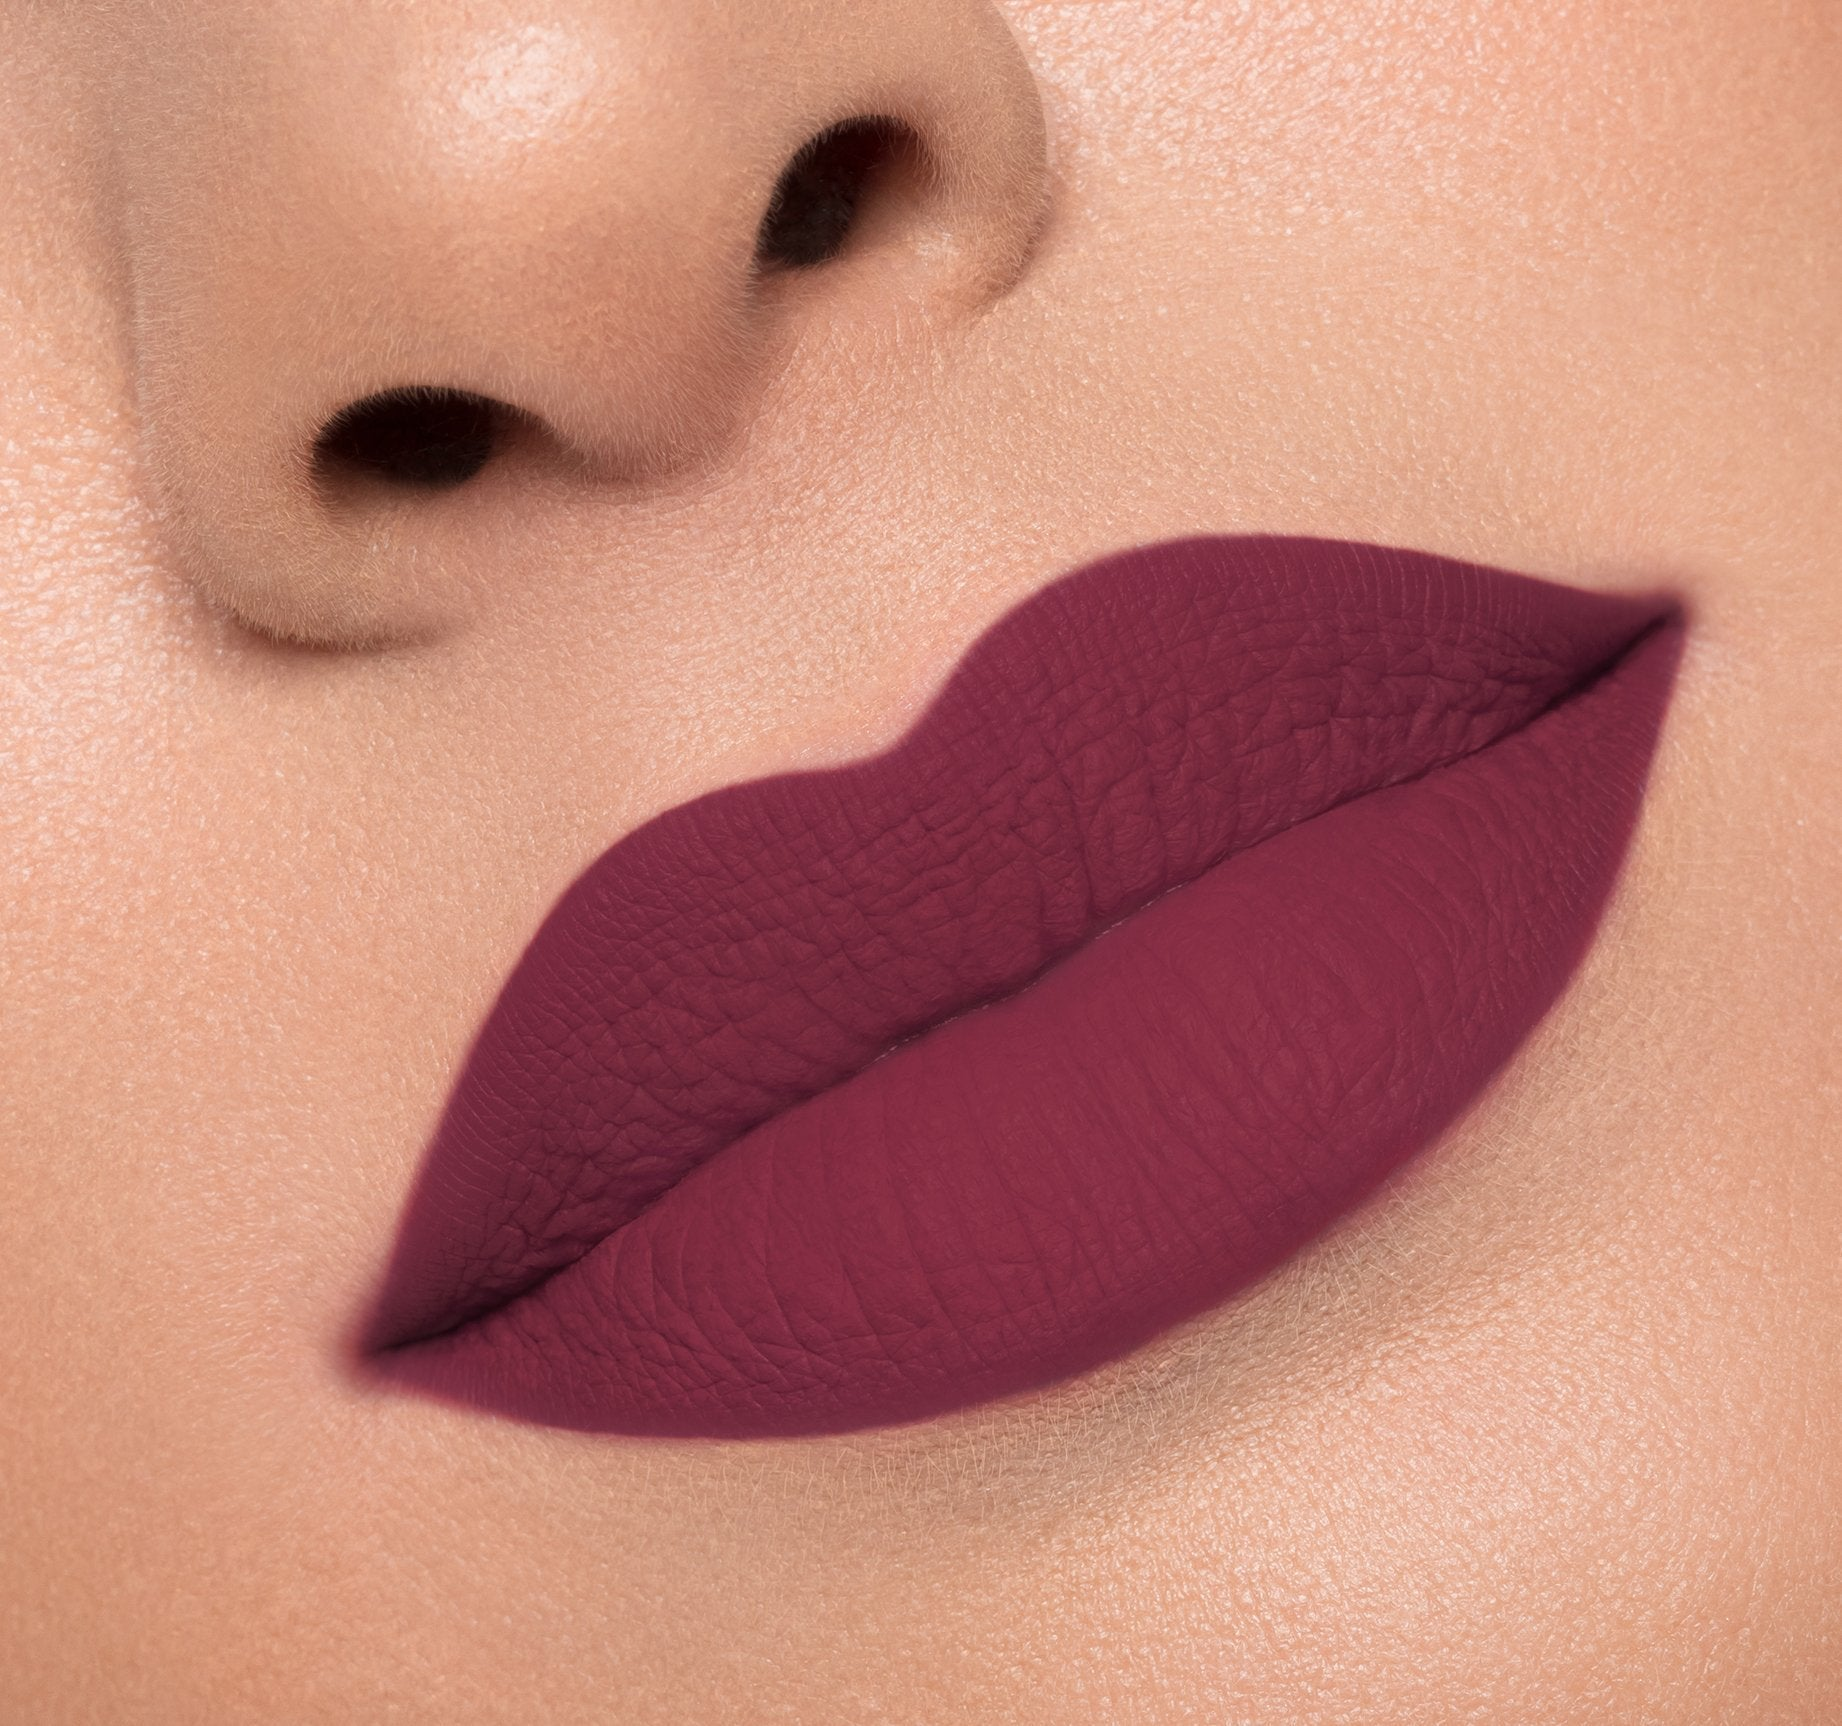 MATTE LIQUID LIPSTICK - MOOD ON MODEL, view larger image